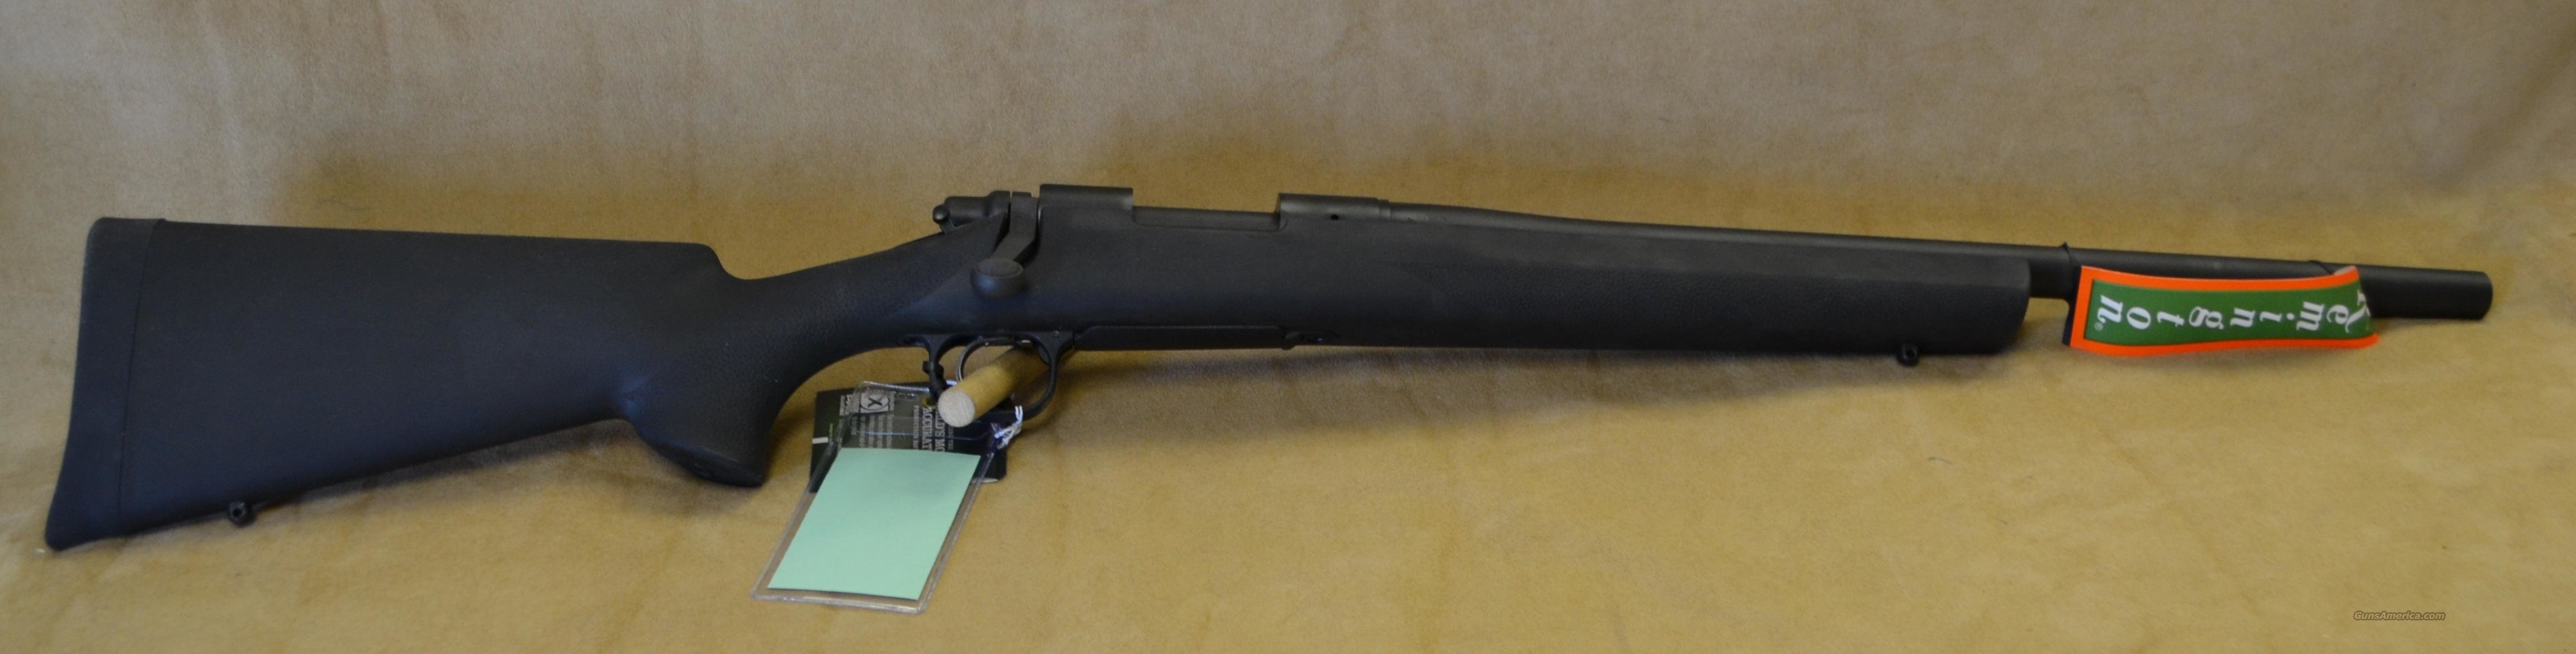 84207 Remington 700 SPS Tactical - 308 Win  Guns > Rifles > Remington Rifles - Modern > Model 700 > Sporting